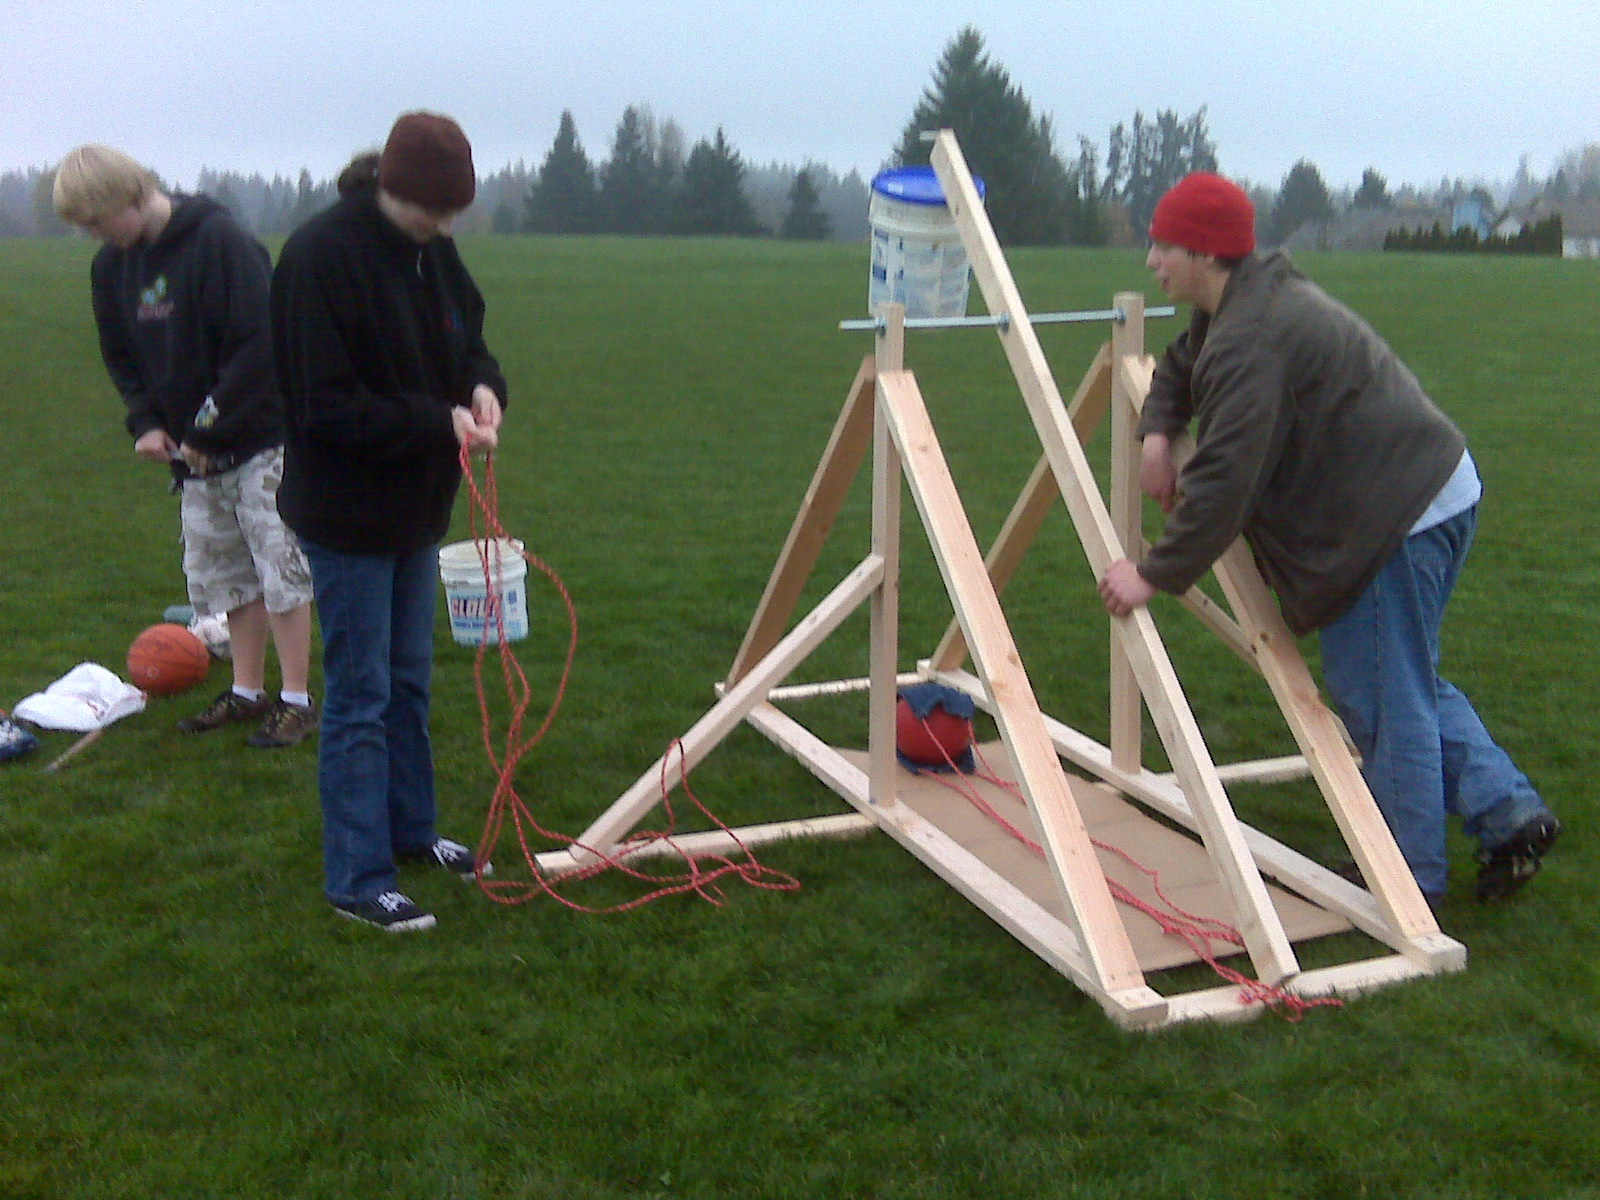 essay on trebuchets A trebuchet is a siege engine that was employed in the middle ages either to smash walls or to throw projectiles over them it is sometimes called a.